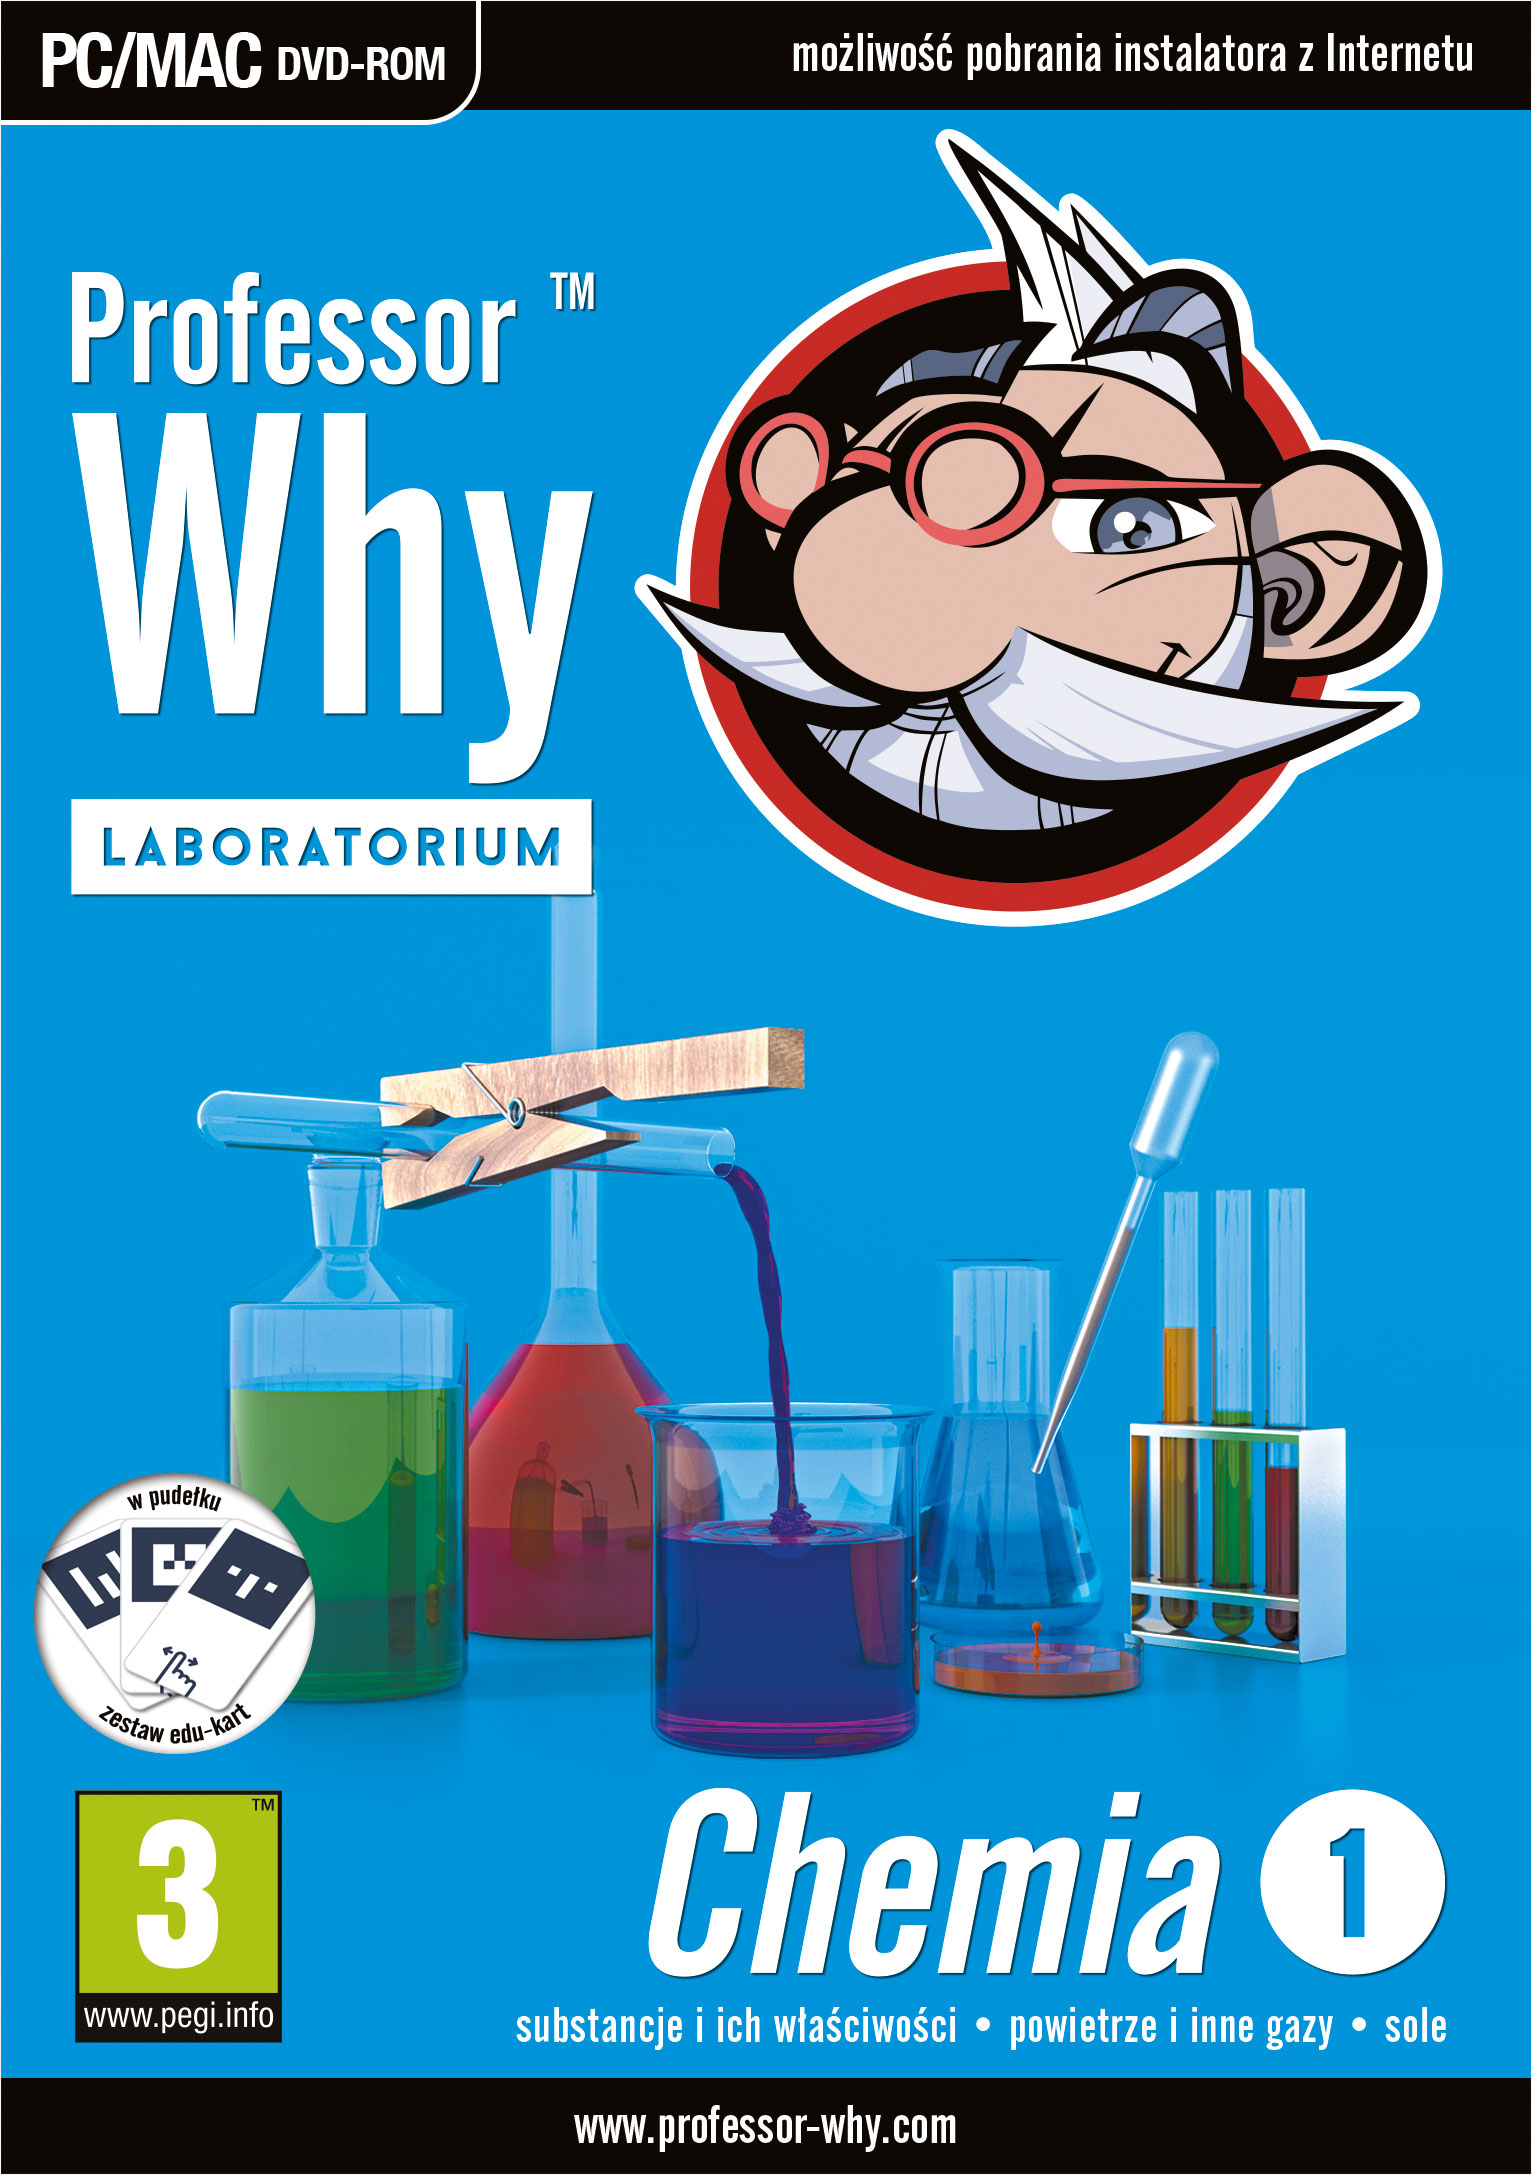 Professor Why Chemia 1 box